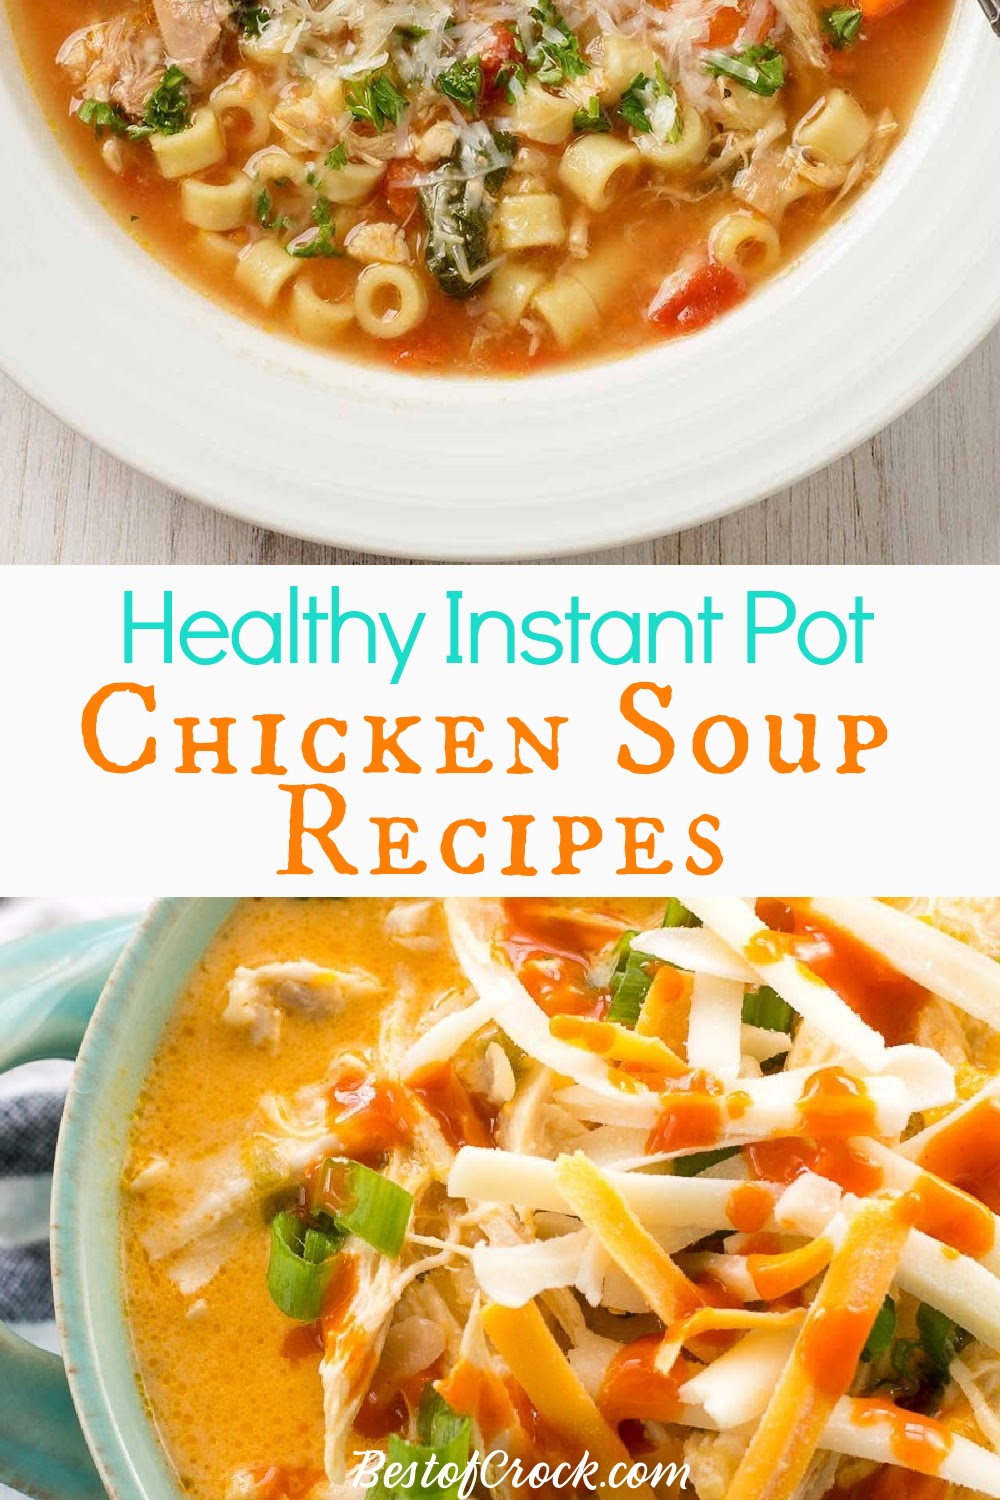 Making Healthy Instant Pot chicken soup recipes may be easy, but they are still comforting for everyone to enjoy! Instant Pot Chicken Recipes | Instant Pot Soup Recipes | Healthy Chicken Soup Recipes | Instant Pot Chicken Soup with Rice | Healthy Instant Pot Recipes | Healthy Soup Recipes #instantpot #soup via @bestofcrock